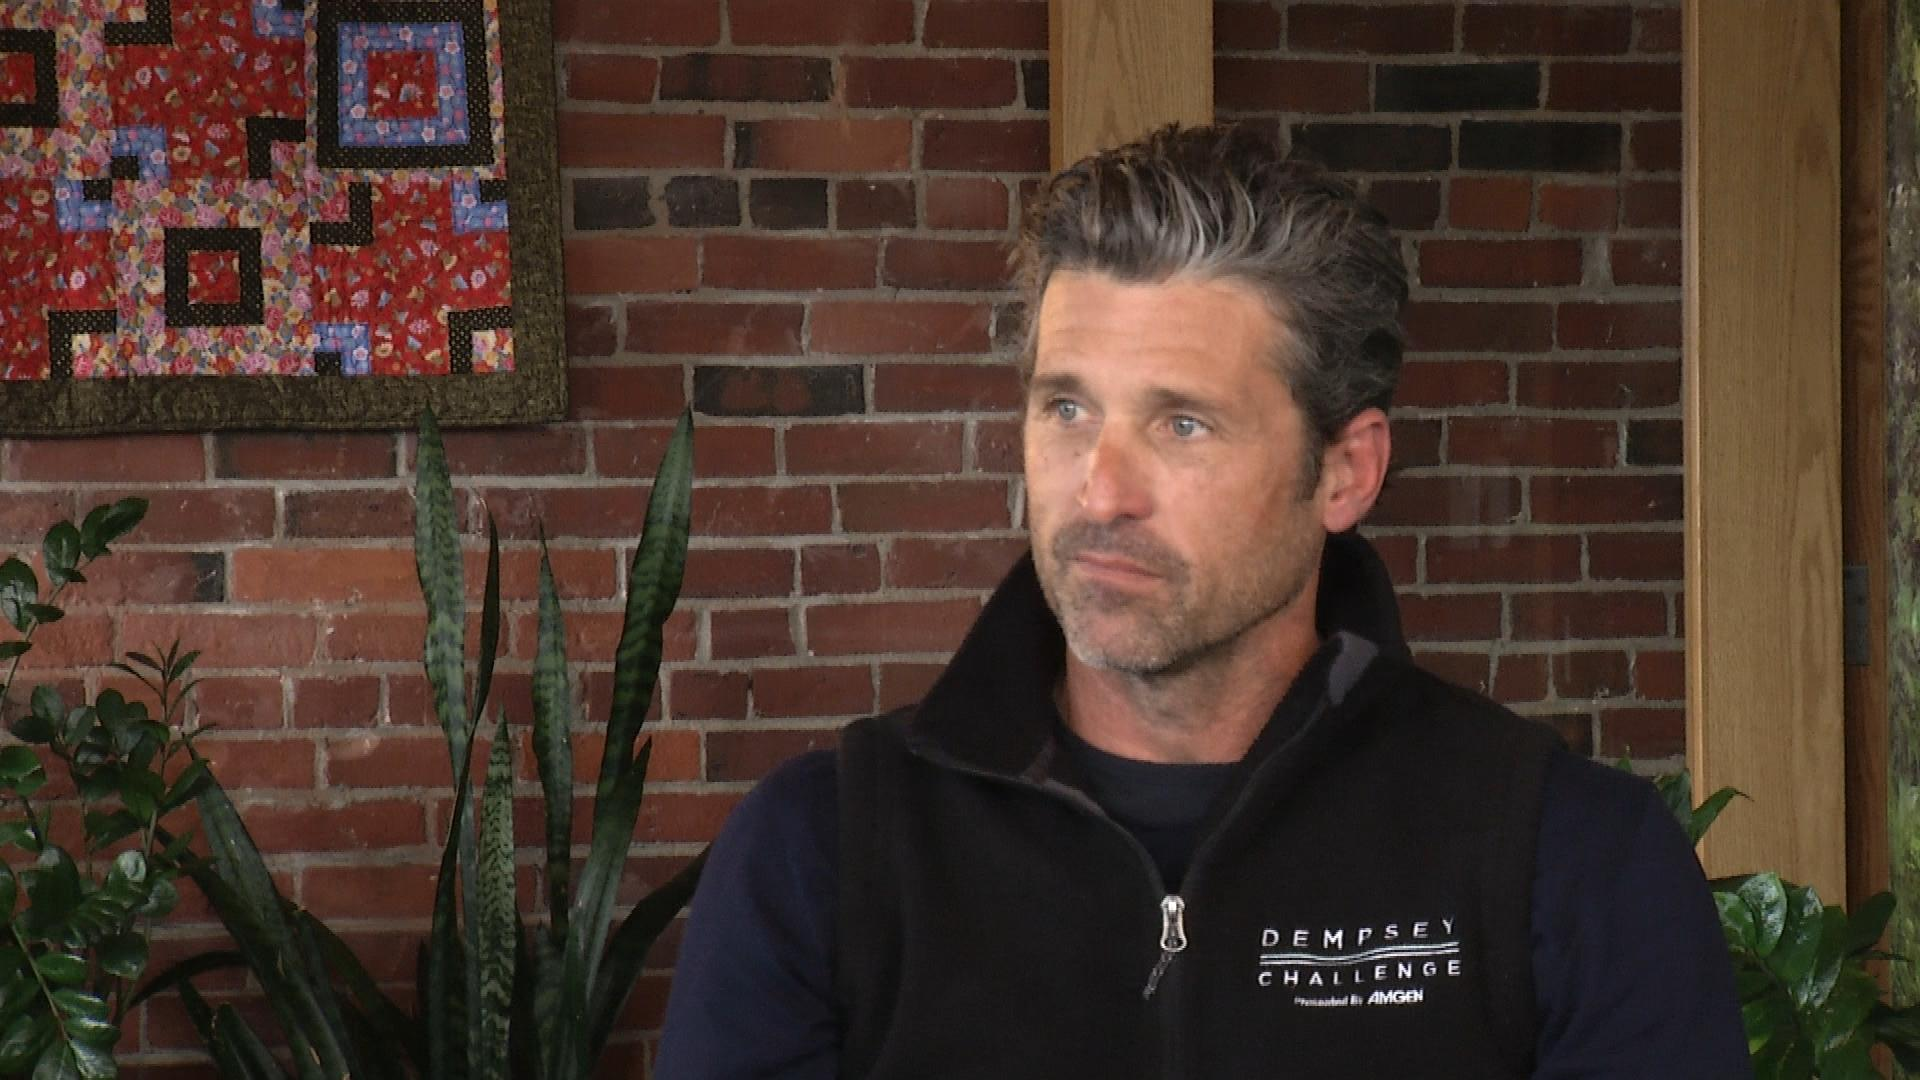 Patrick Dempsey Remembers His Late Mother And Carrying On Her Legacy